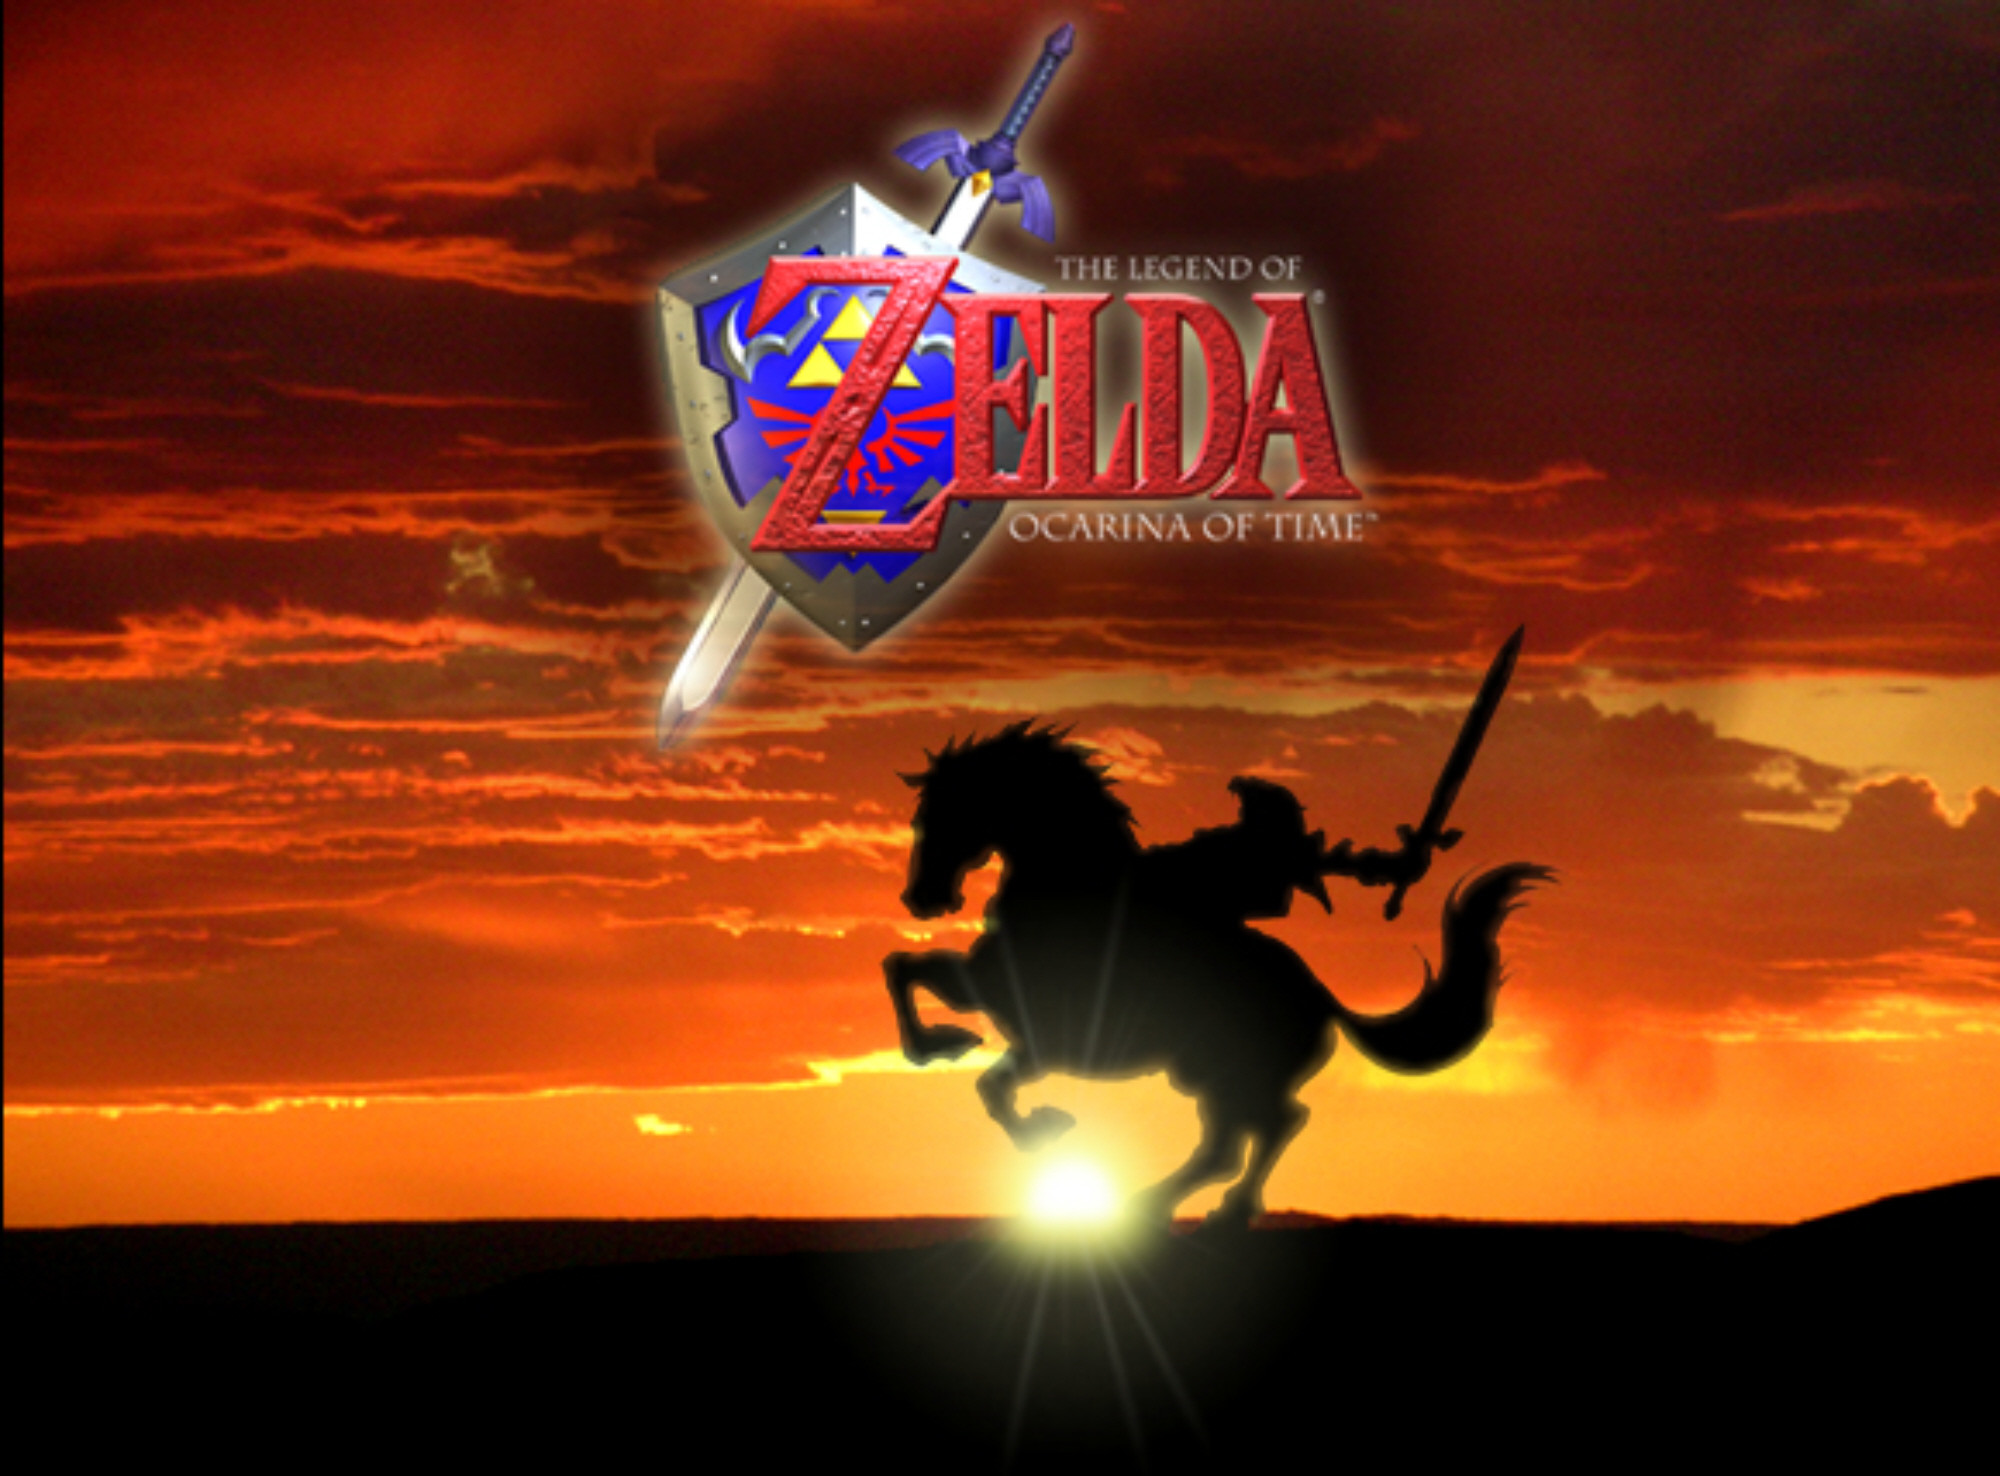 HD Quality The Legend of Zelda Ocarina of Time Wallpaper 6 Game .